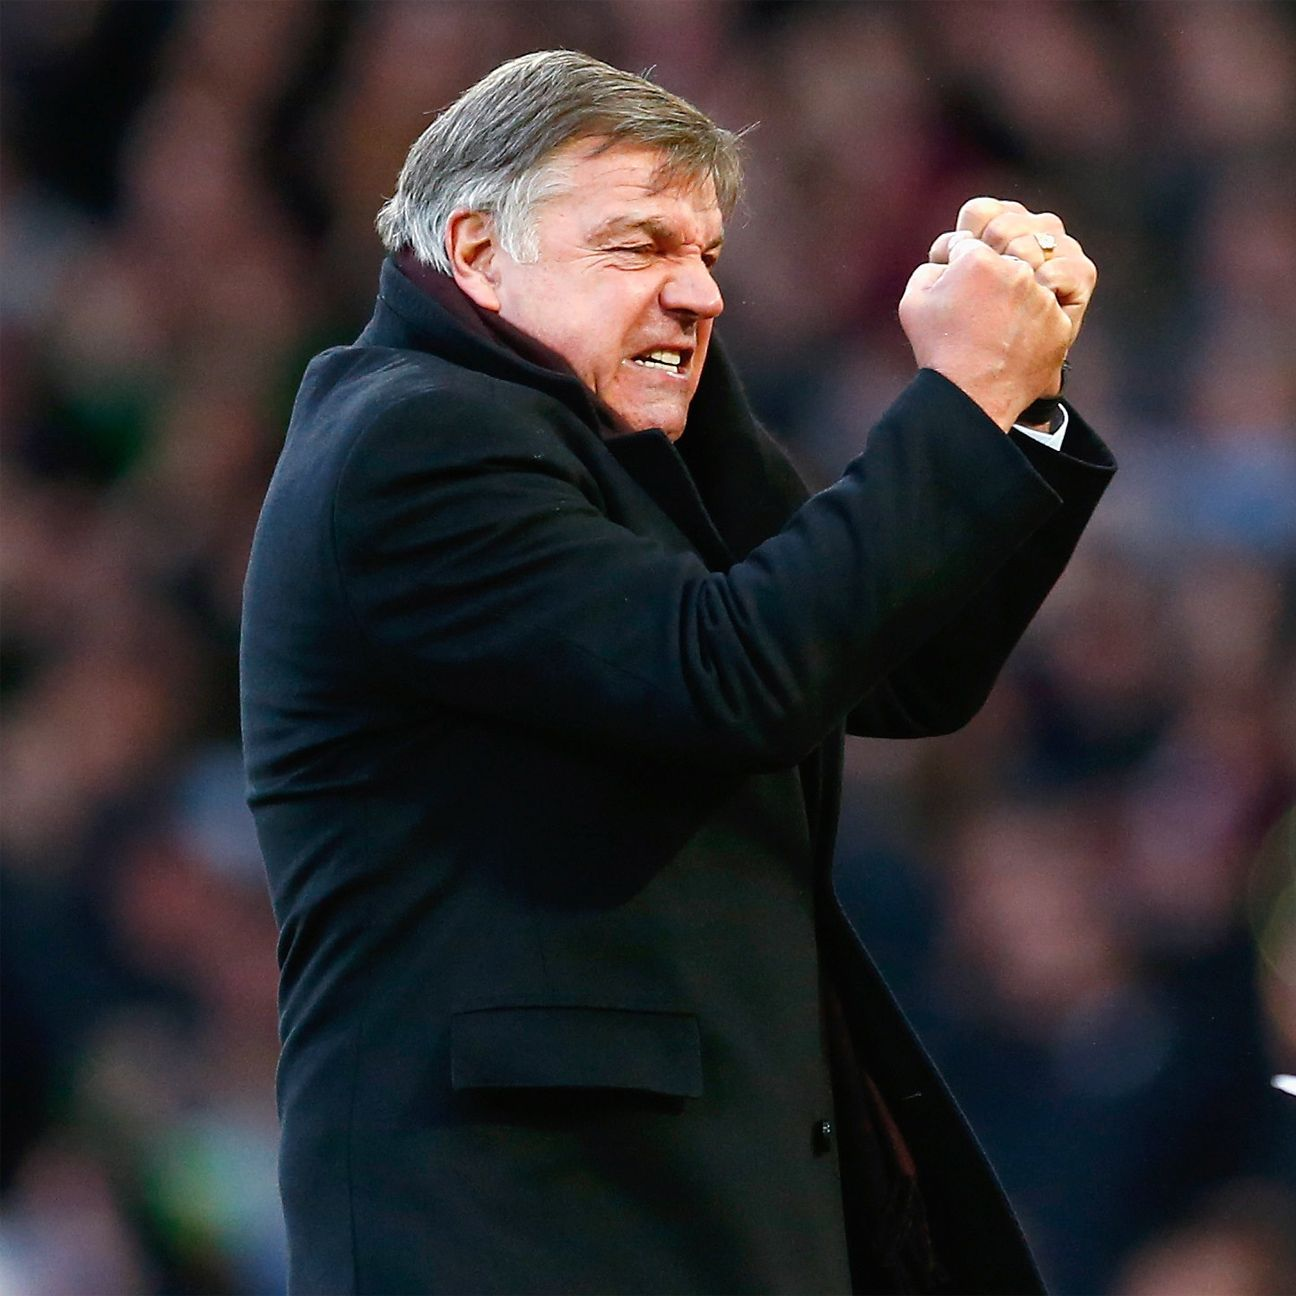 Tipped for another relegation struggle, Sam Allardyce now has West Ham dreaming of European nights.